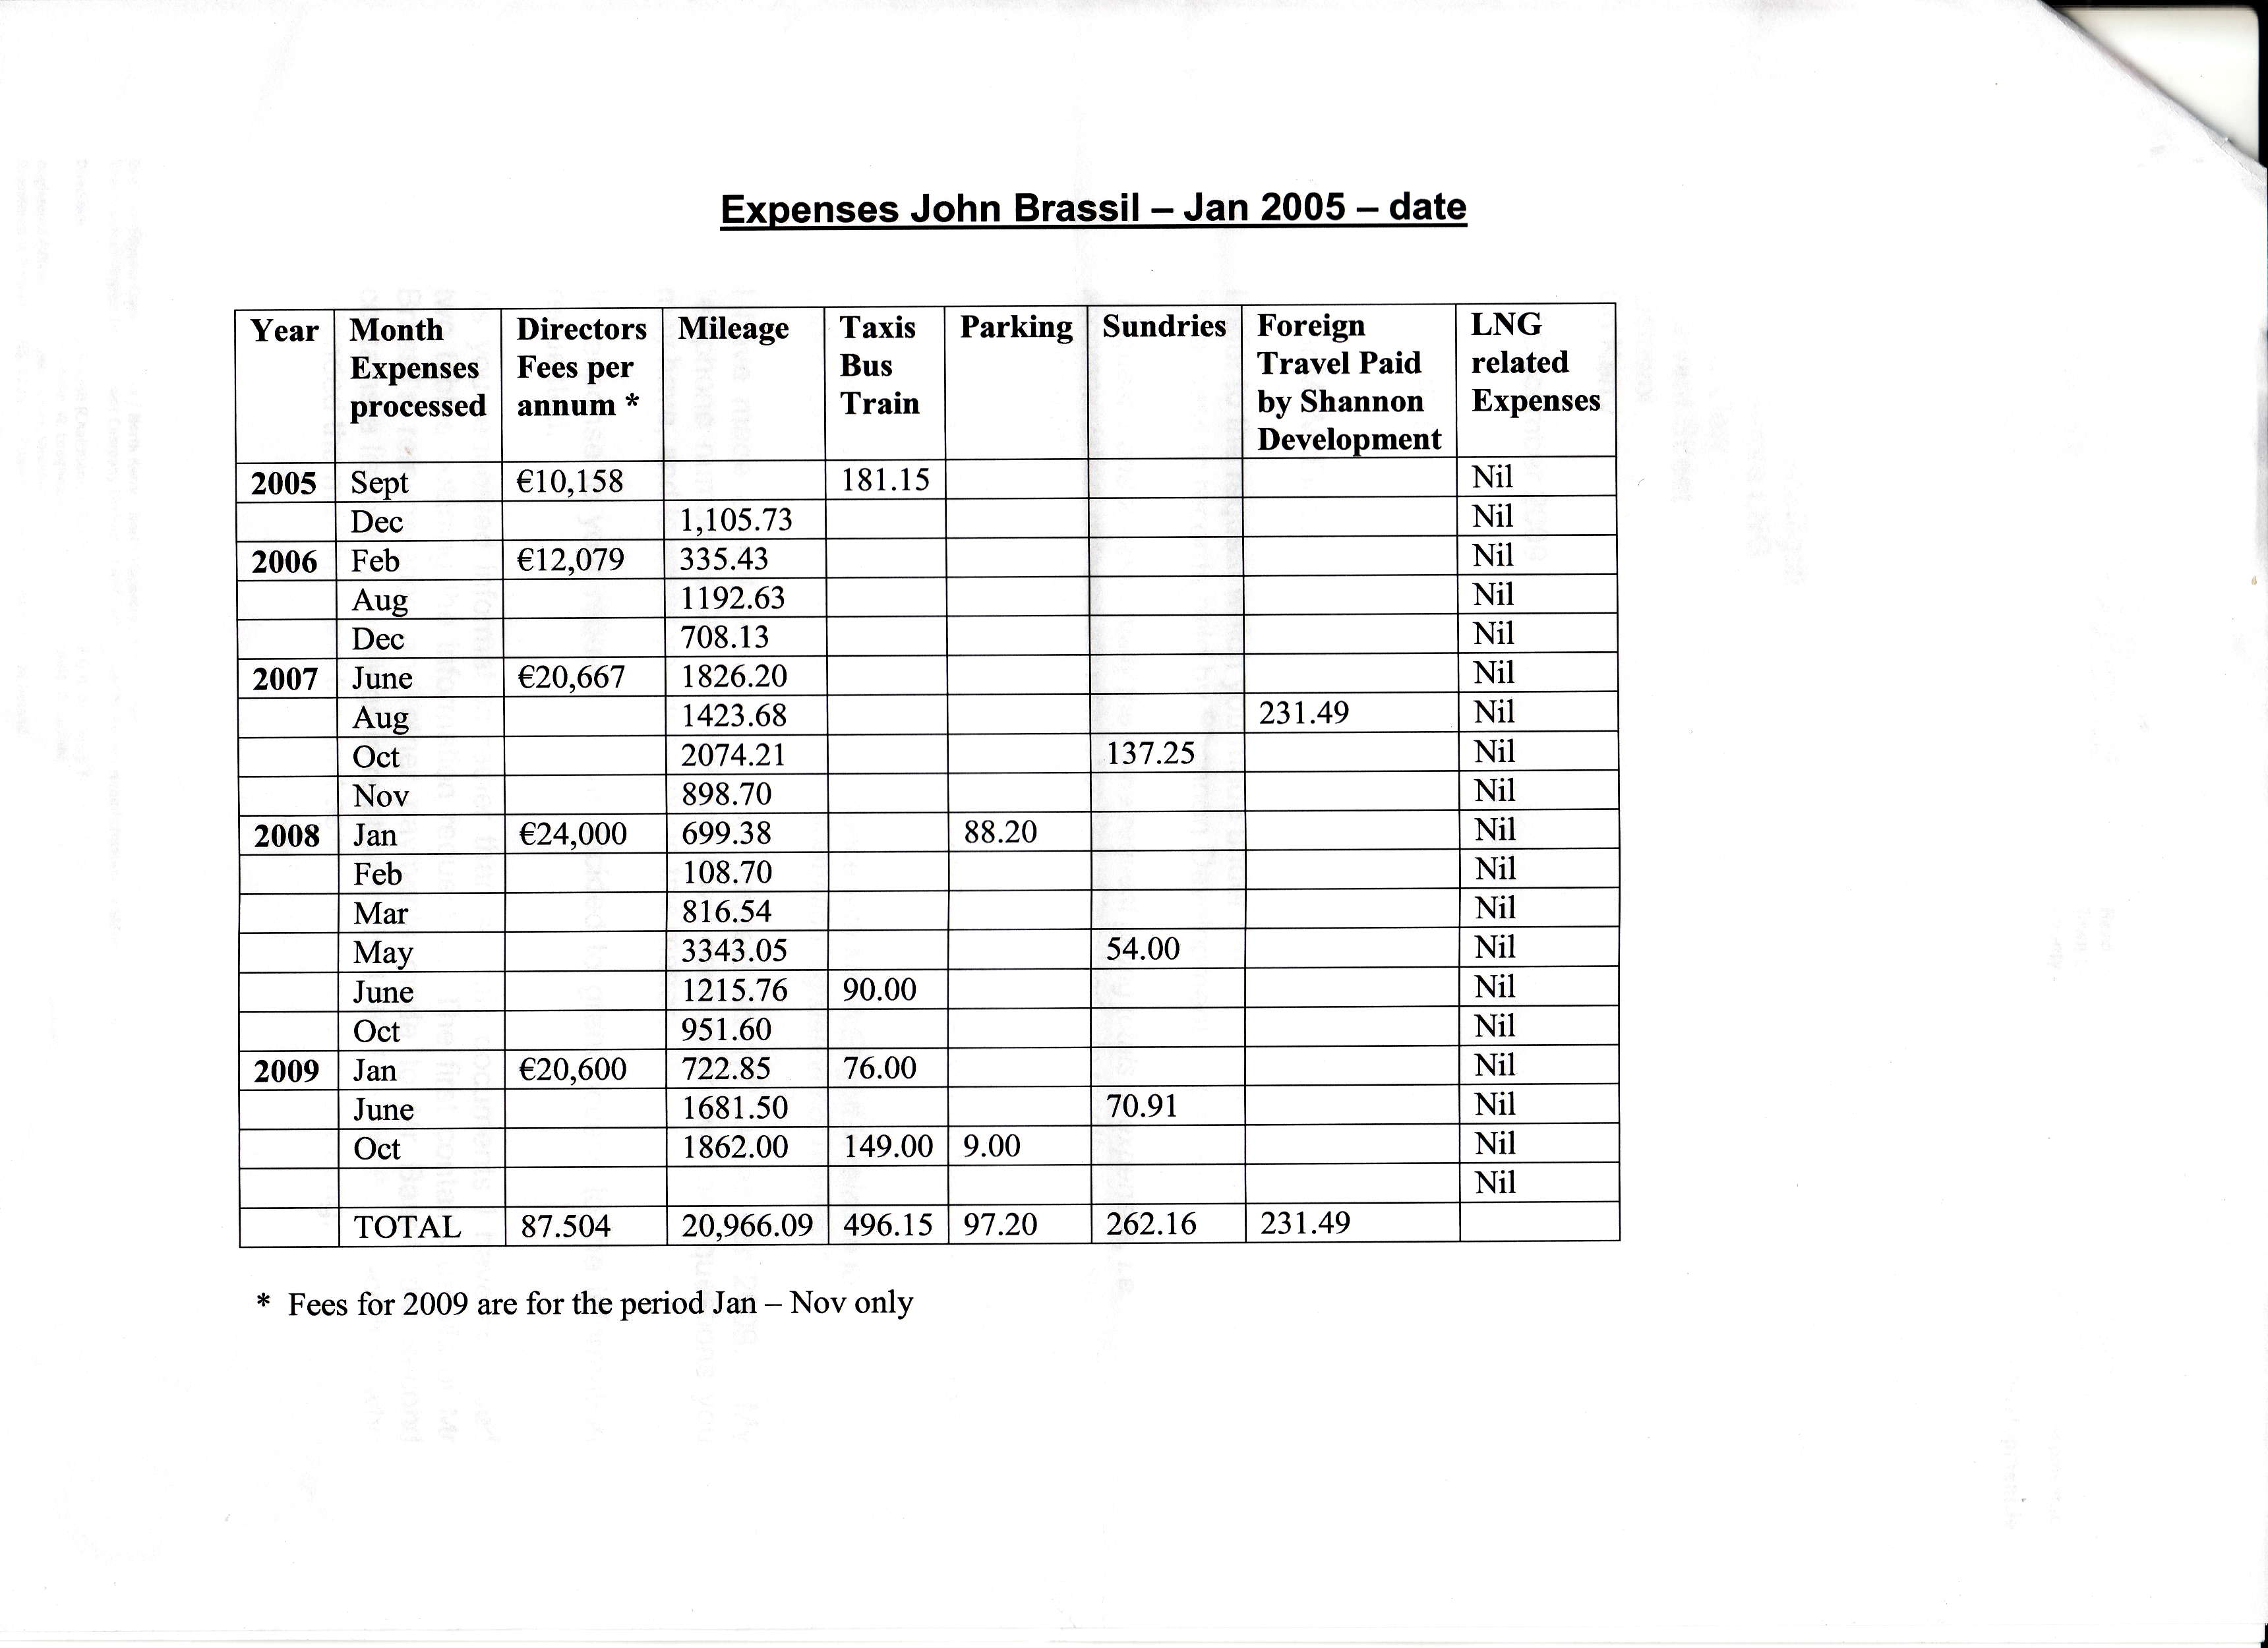 Breakdown of Expenses paid to John Brassil